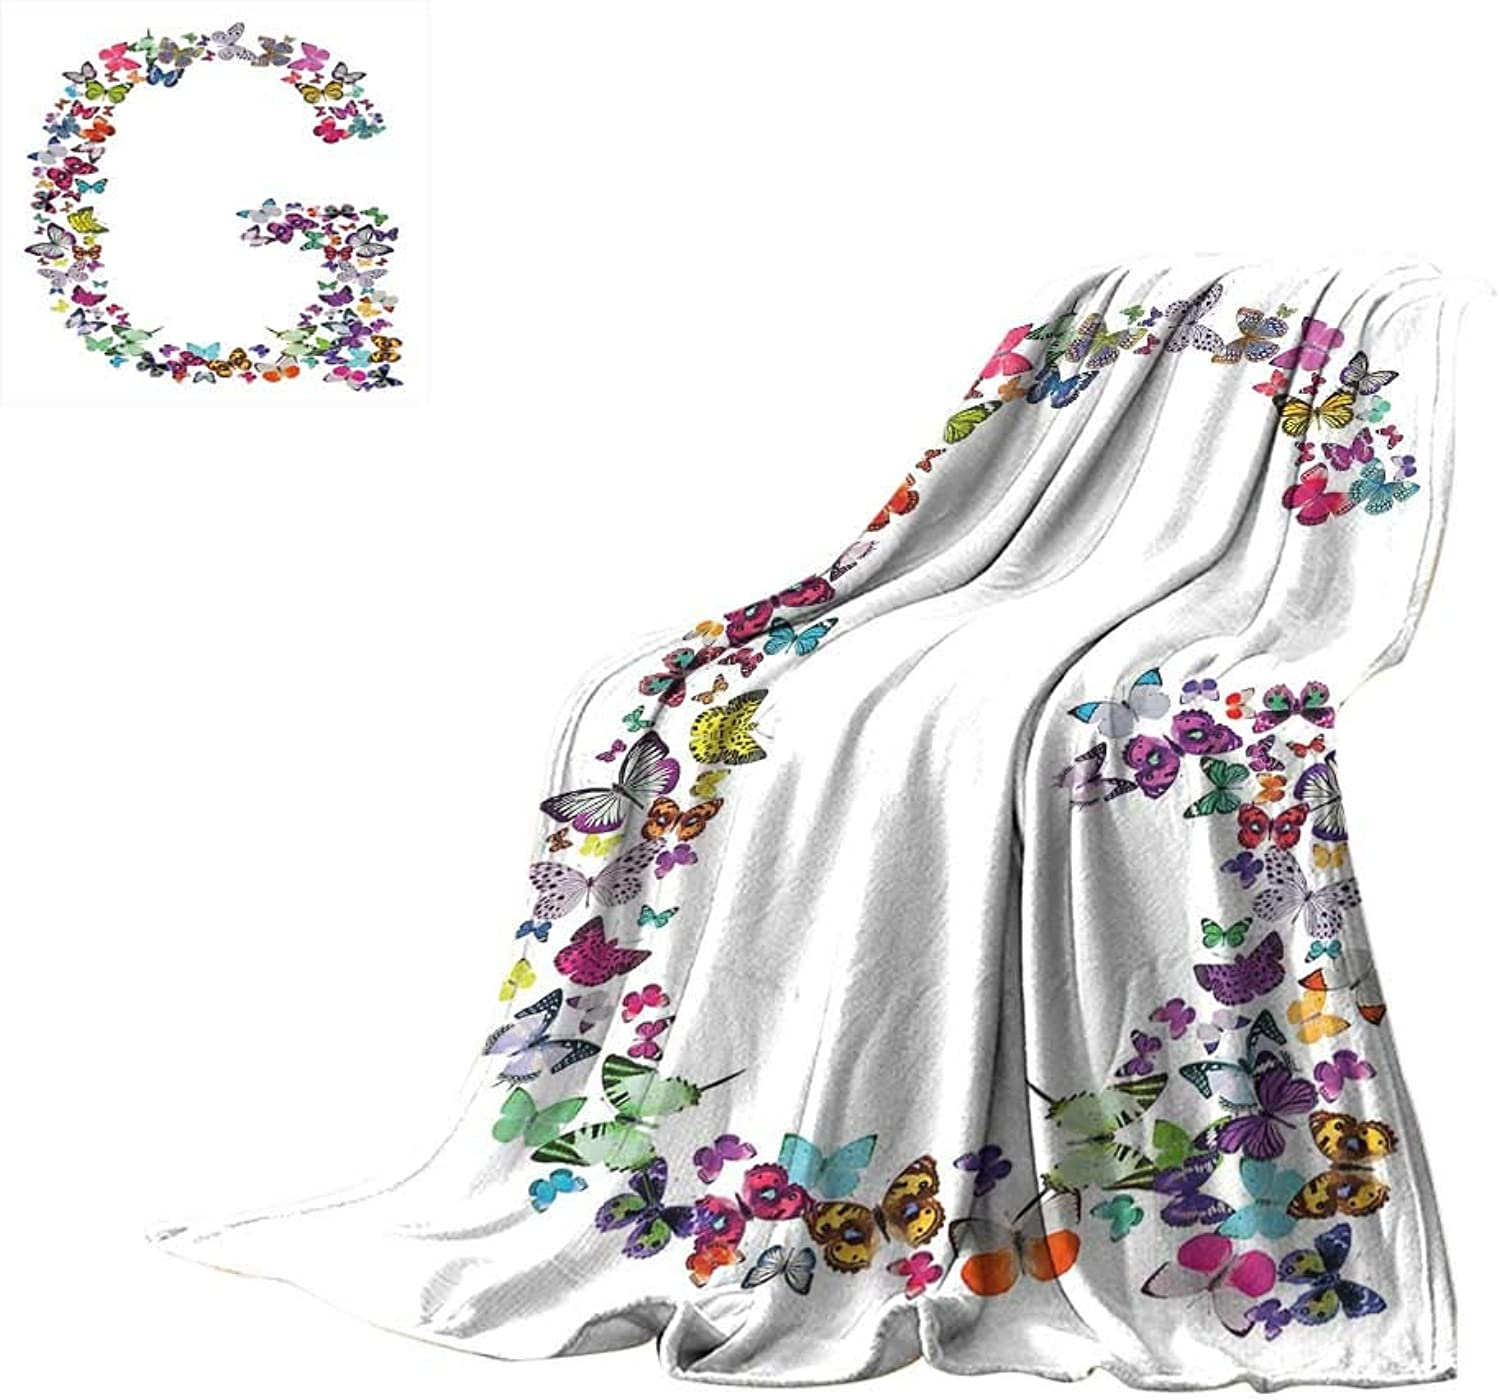 Letter G,Fleece Blanket Exotic colorful Butterflies in The Shape of Letter G Cute Feminine Girls Design Blanket for Bed Couch W60 x L50 inch